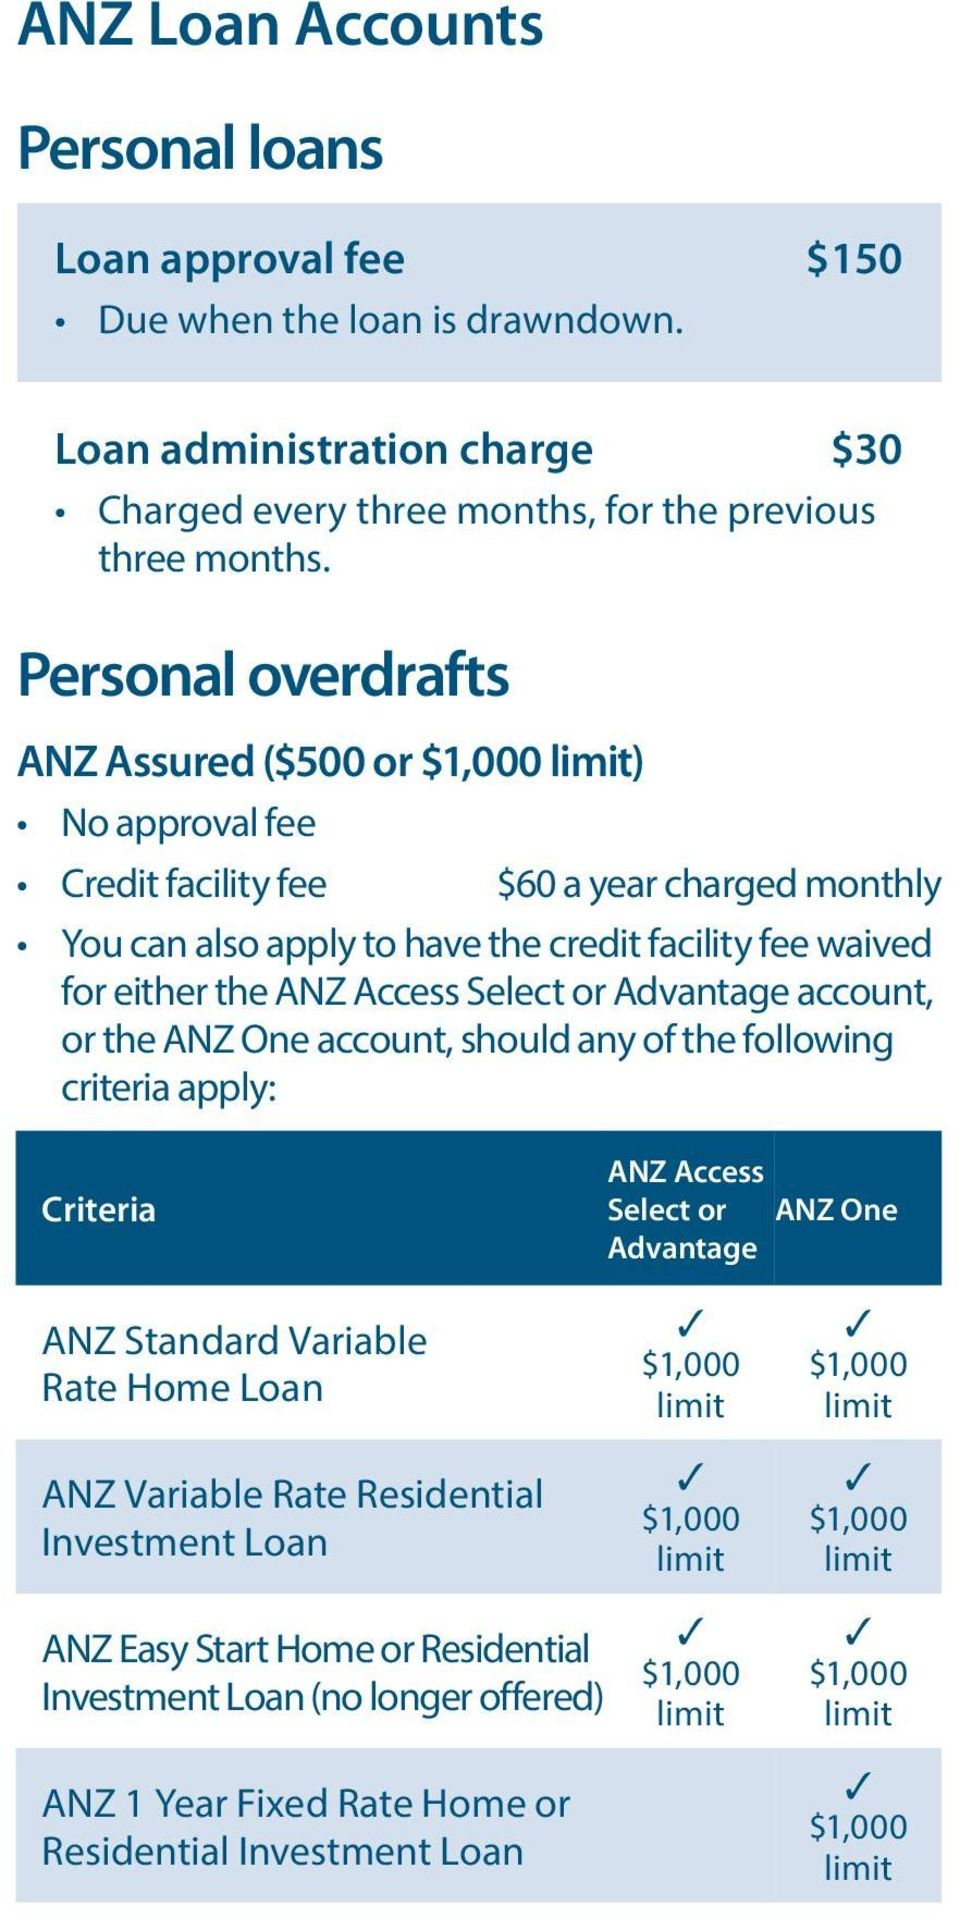 Access Select or Advantage account, or the ANZ One account, should any of the following criteria apply: Criteria ANZ Access Select or ANZ One Advantage ANZ Standard Variable Rate Home Loan ANZ